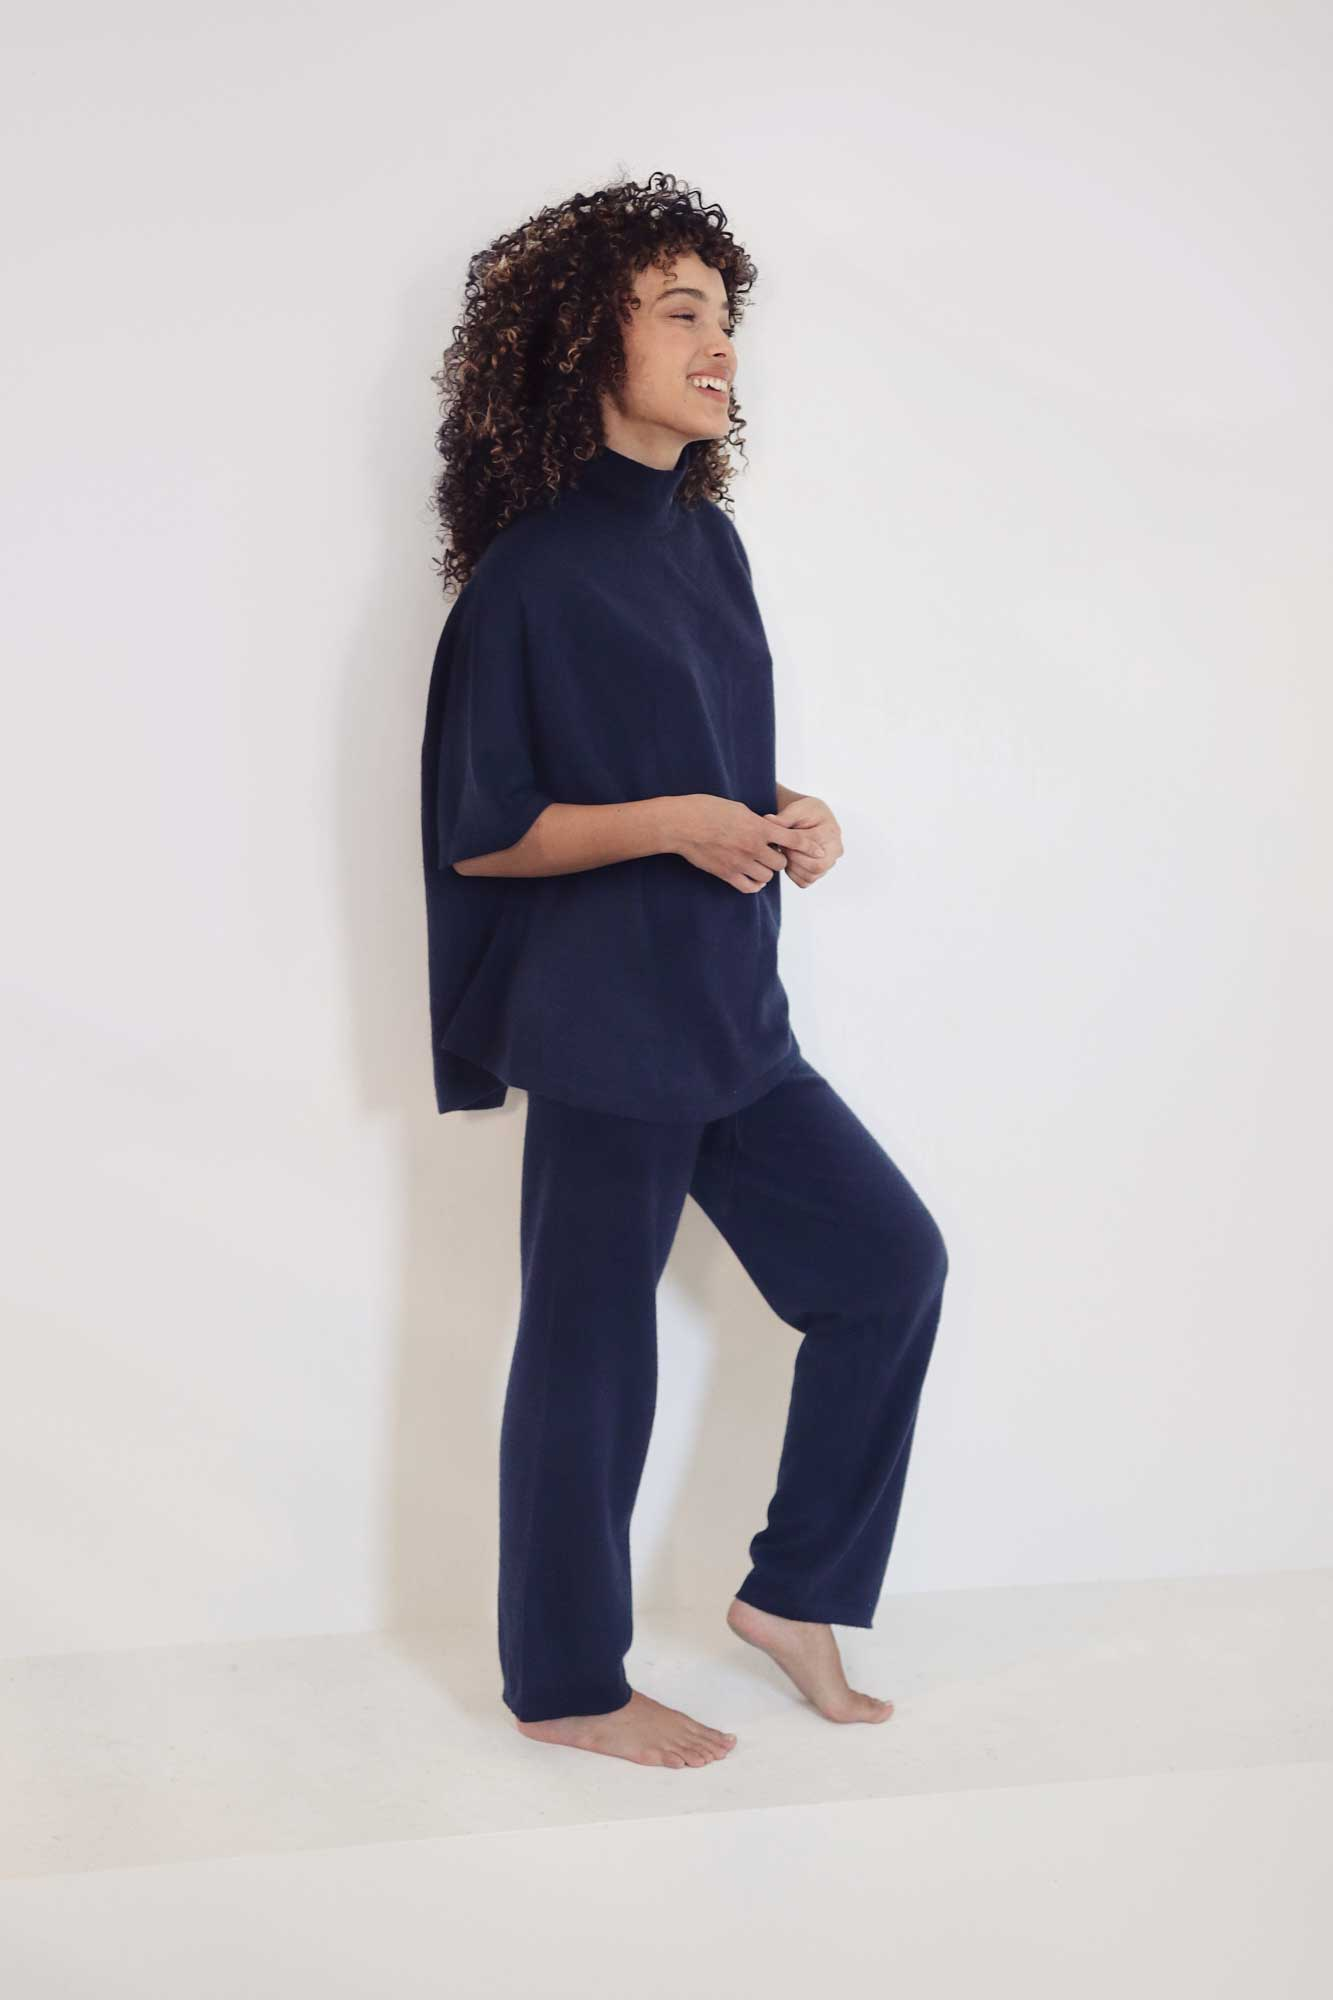 Model posing with navy loungewear